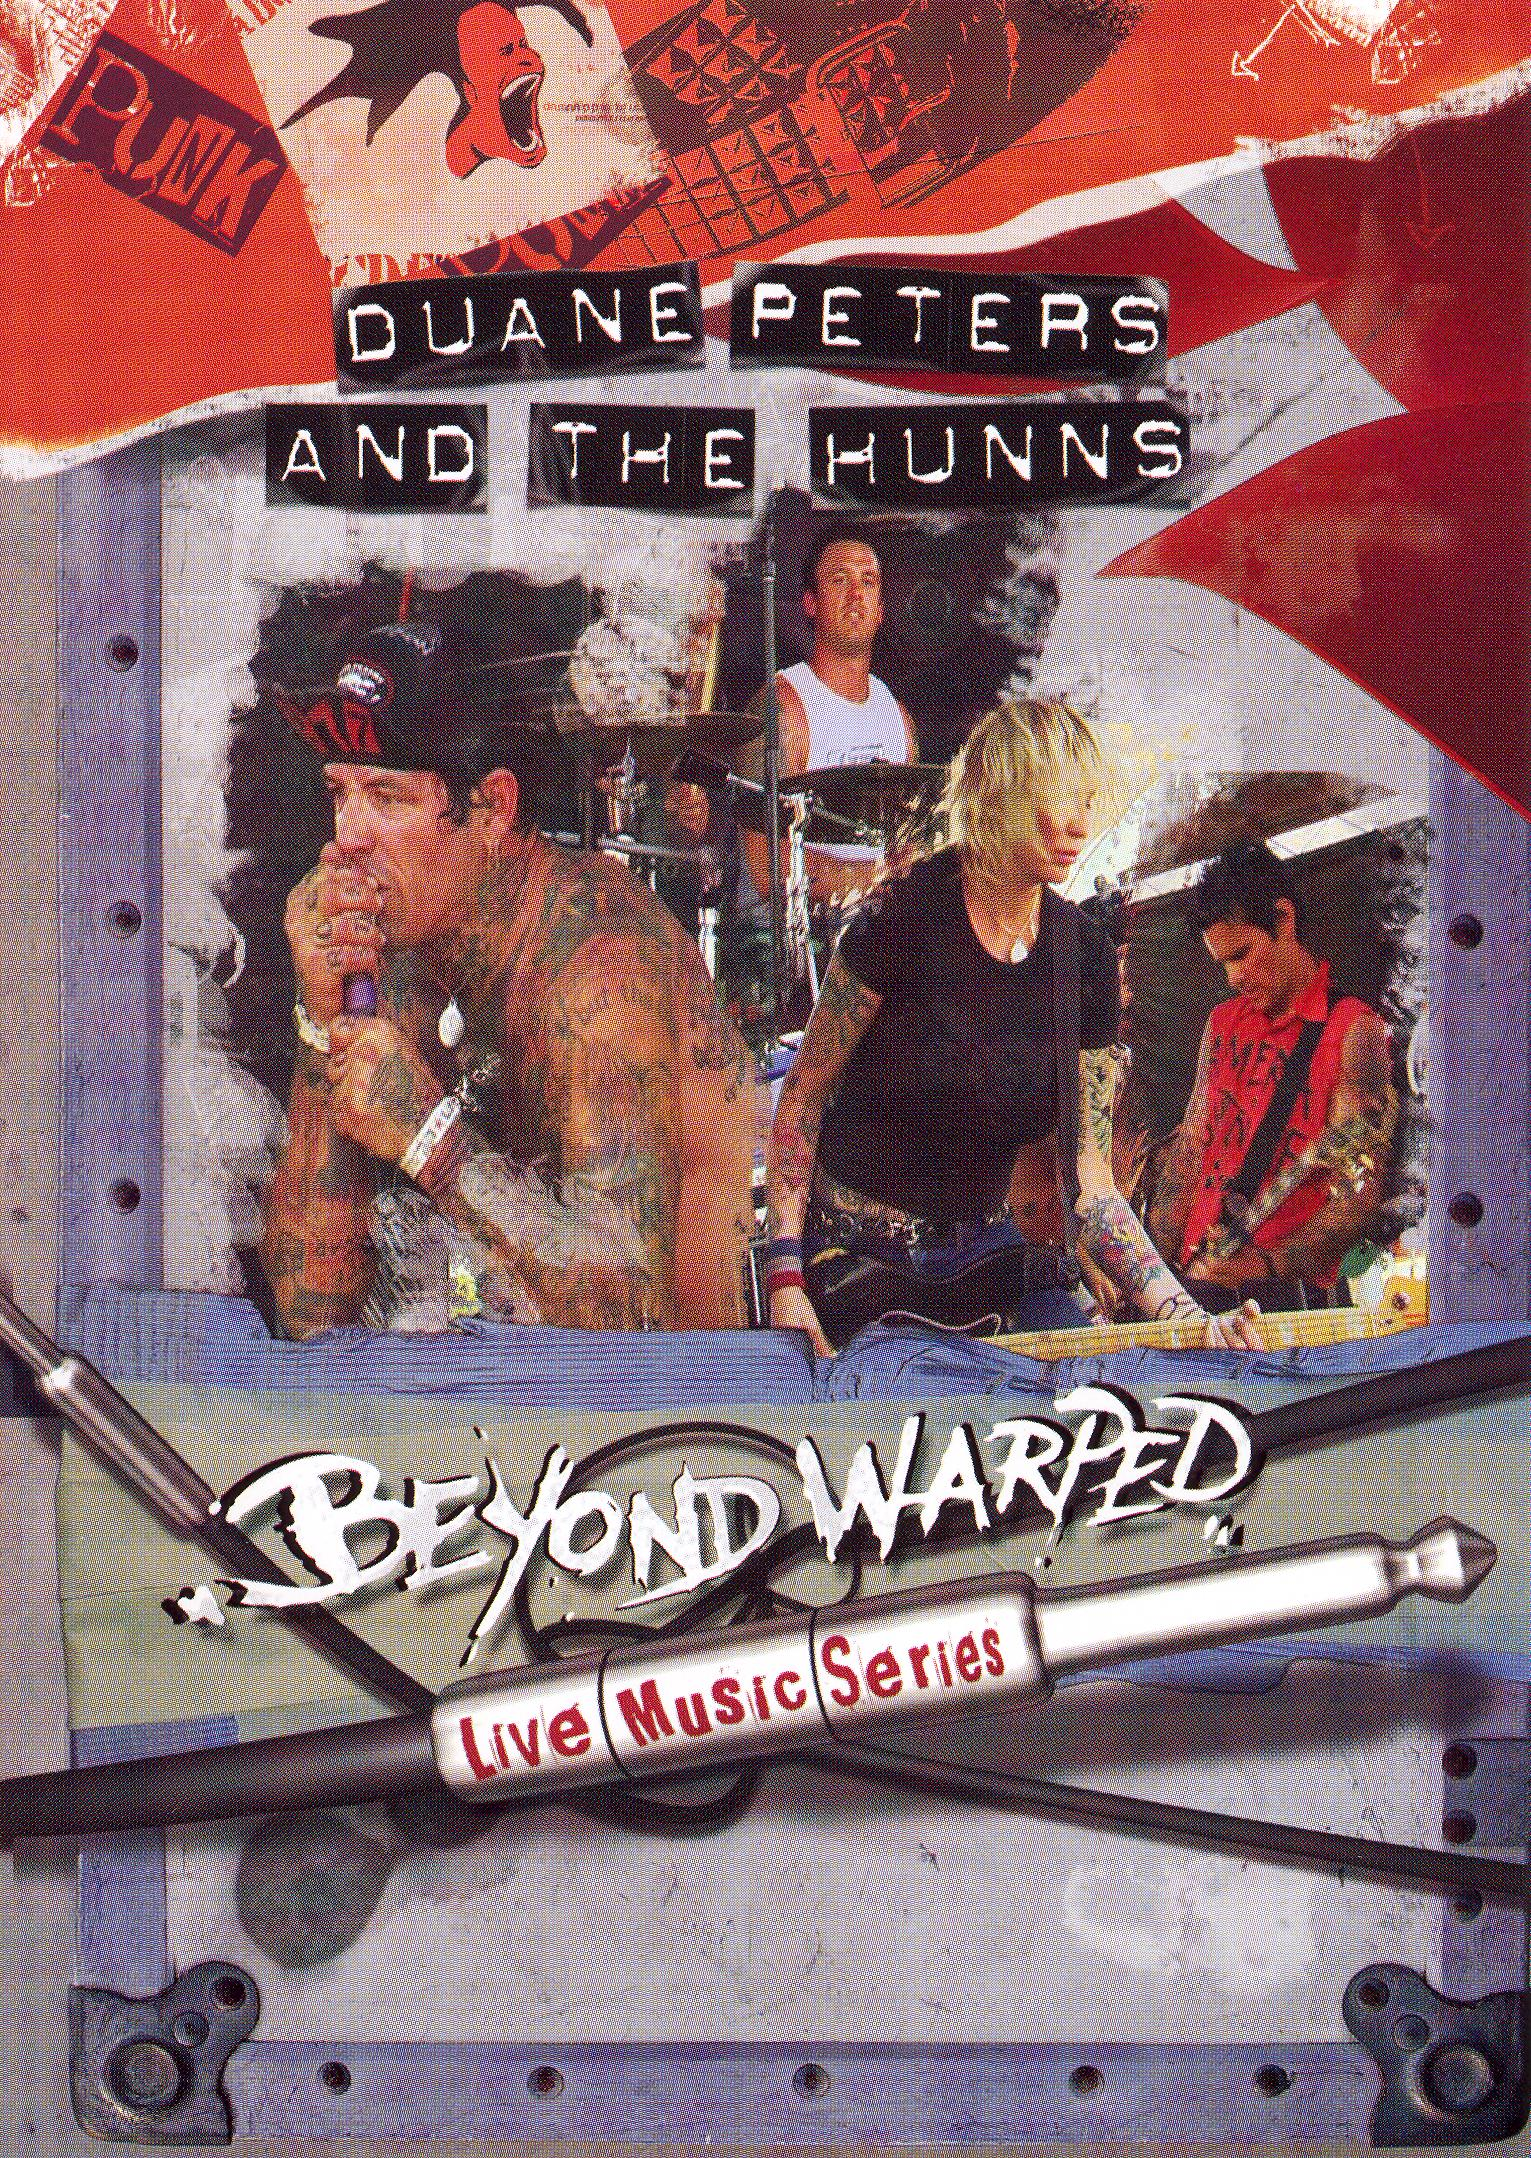 Beyond Warped: Duane Peters and the Huns